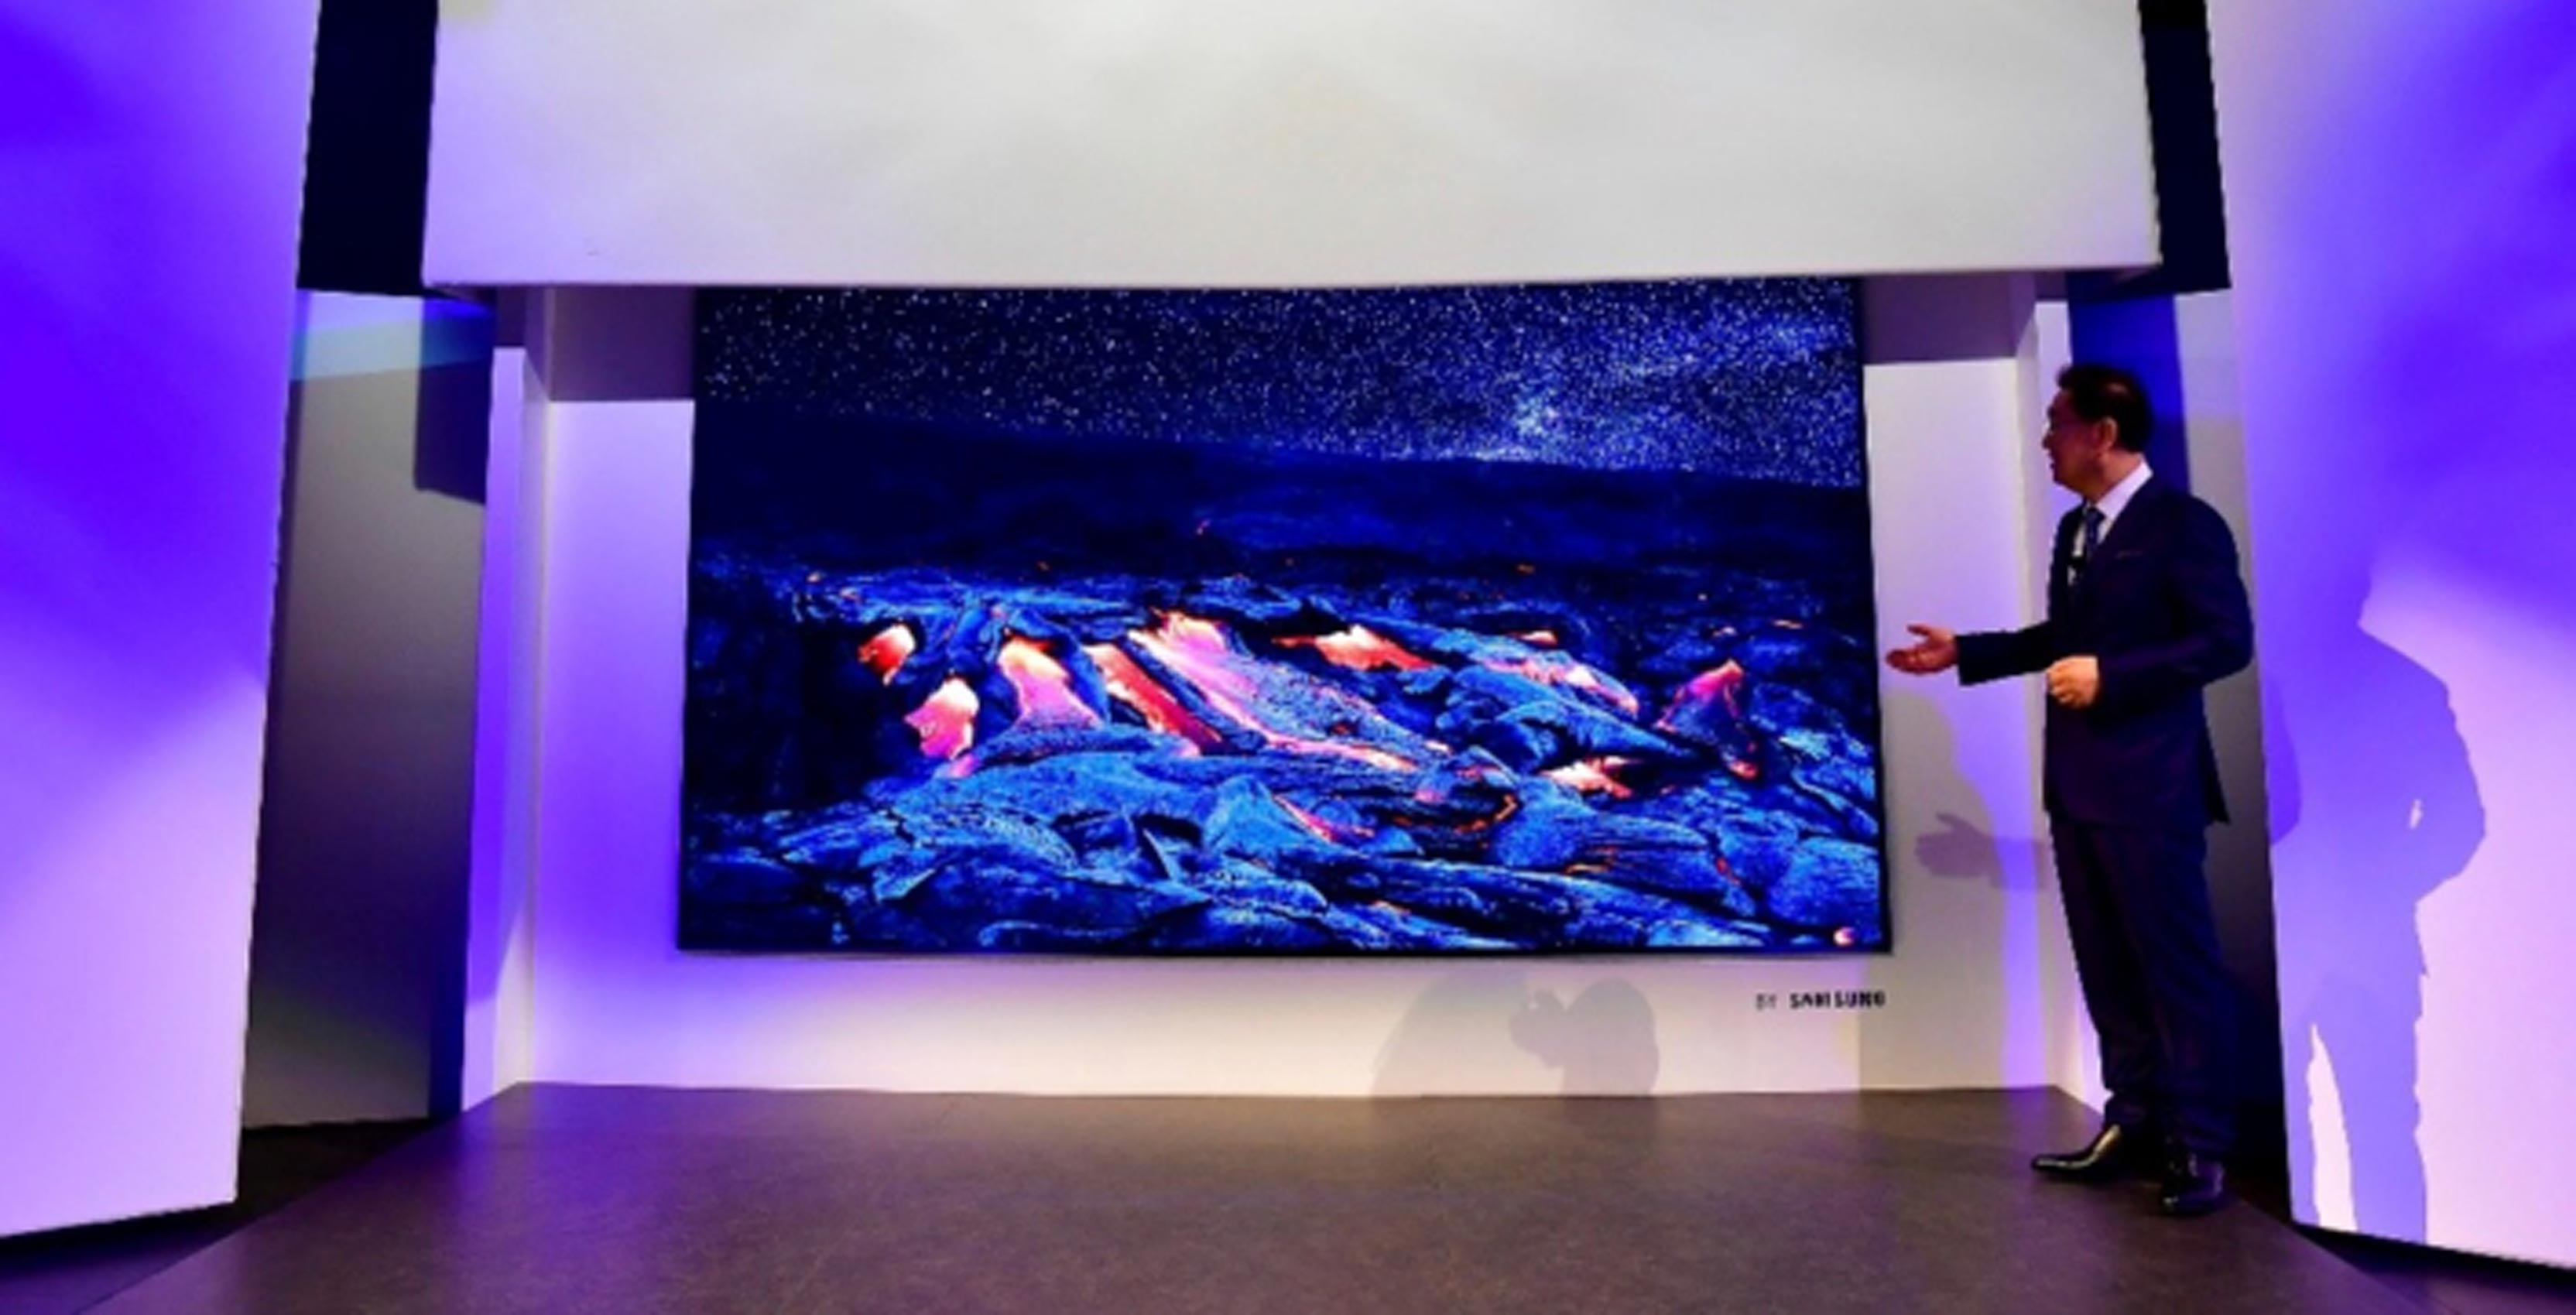 Samsung's new 146-inch MicroLED TV, The Wall